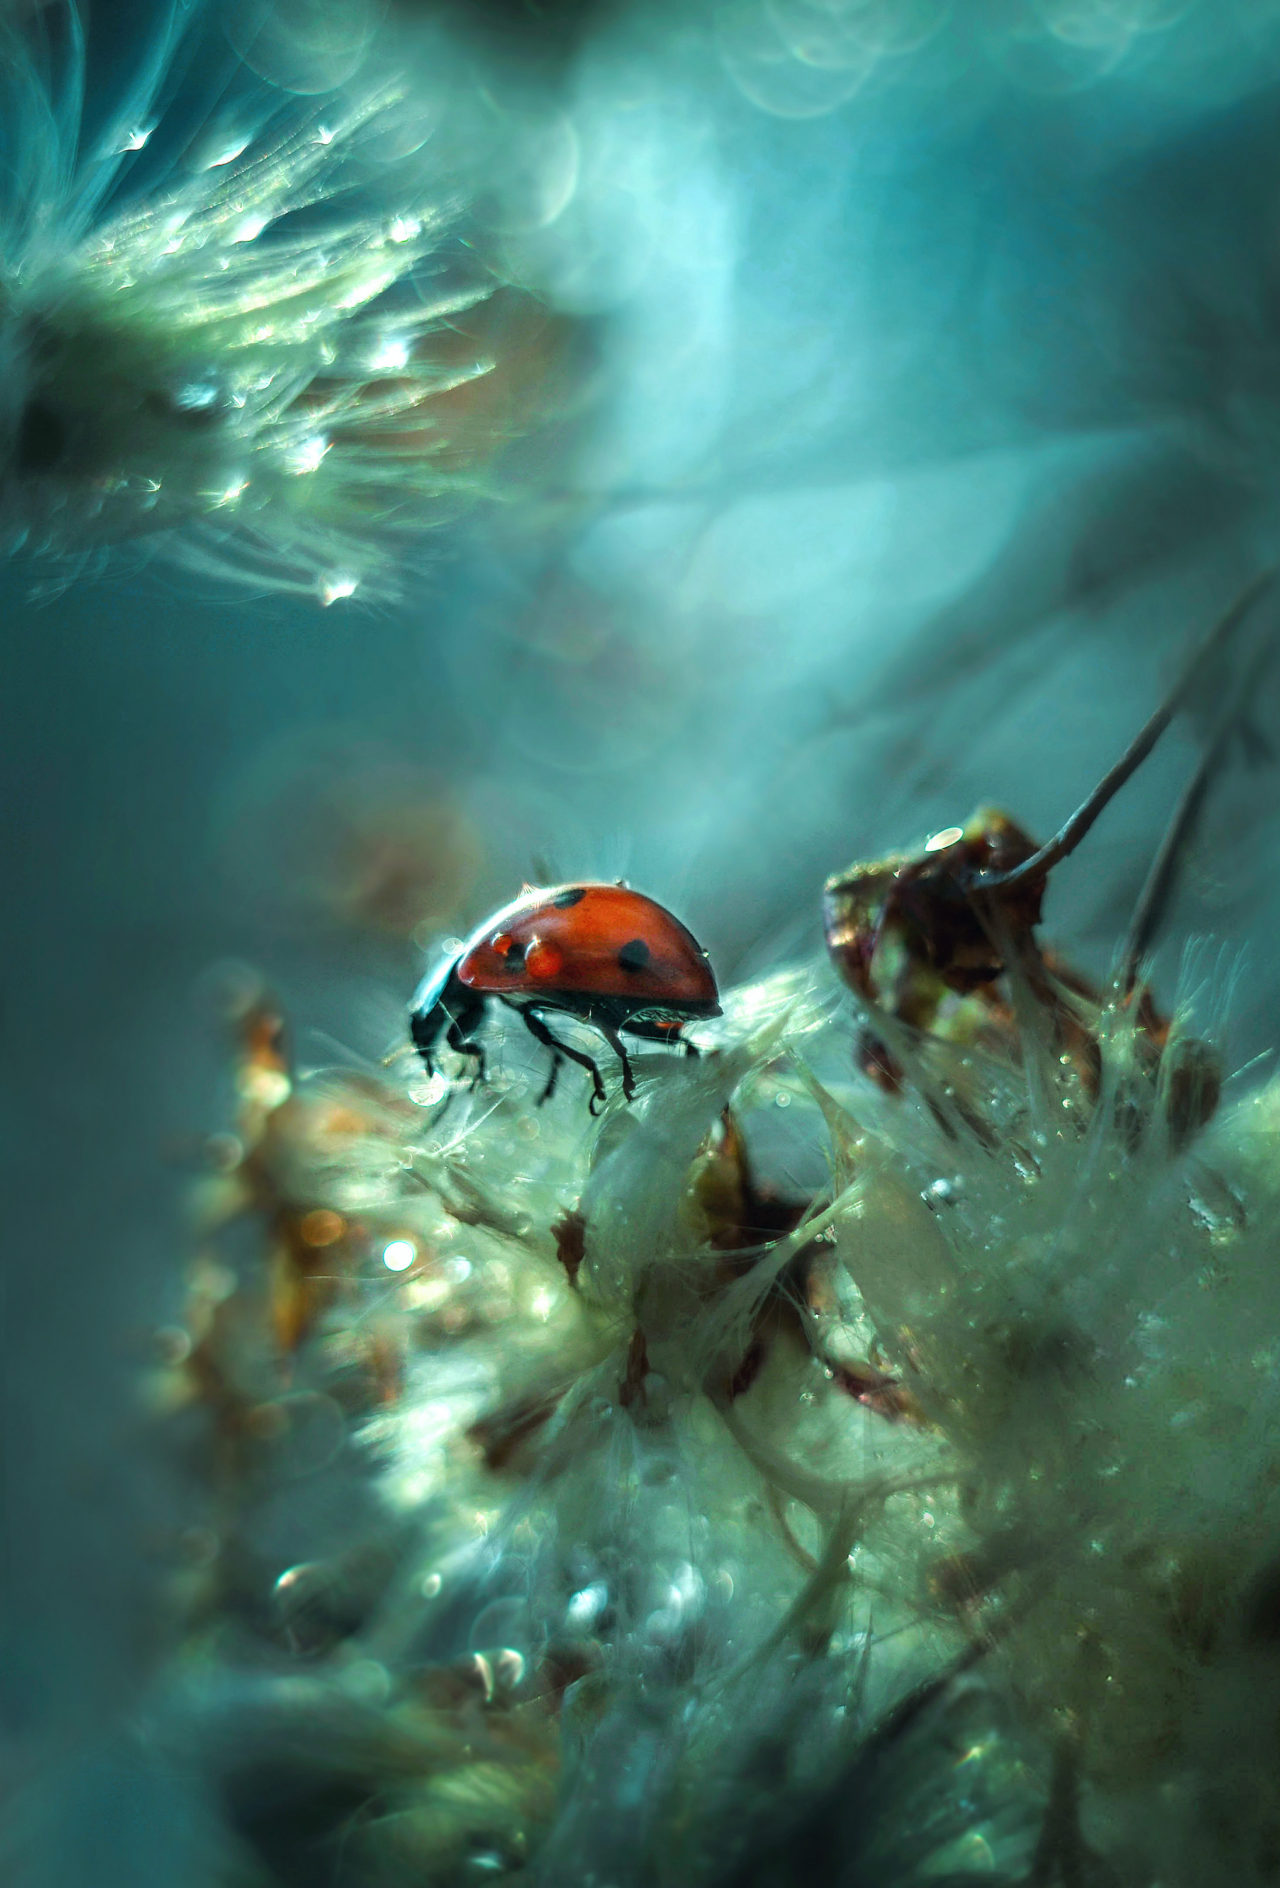 Beetle – Most Beautiful Picture of the Day: December 25, 2017 – Most Beautiful Picture